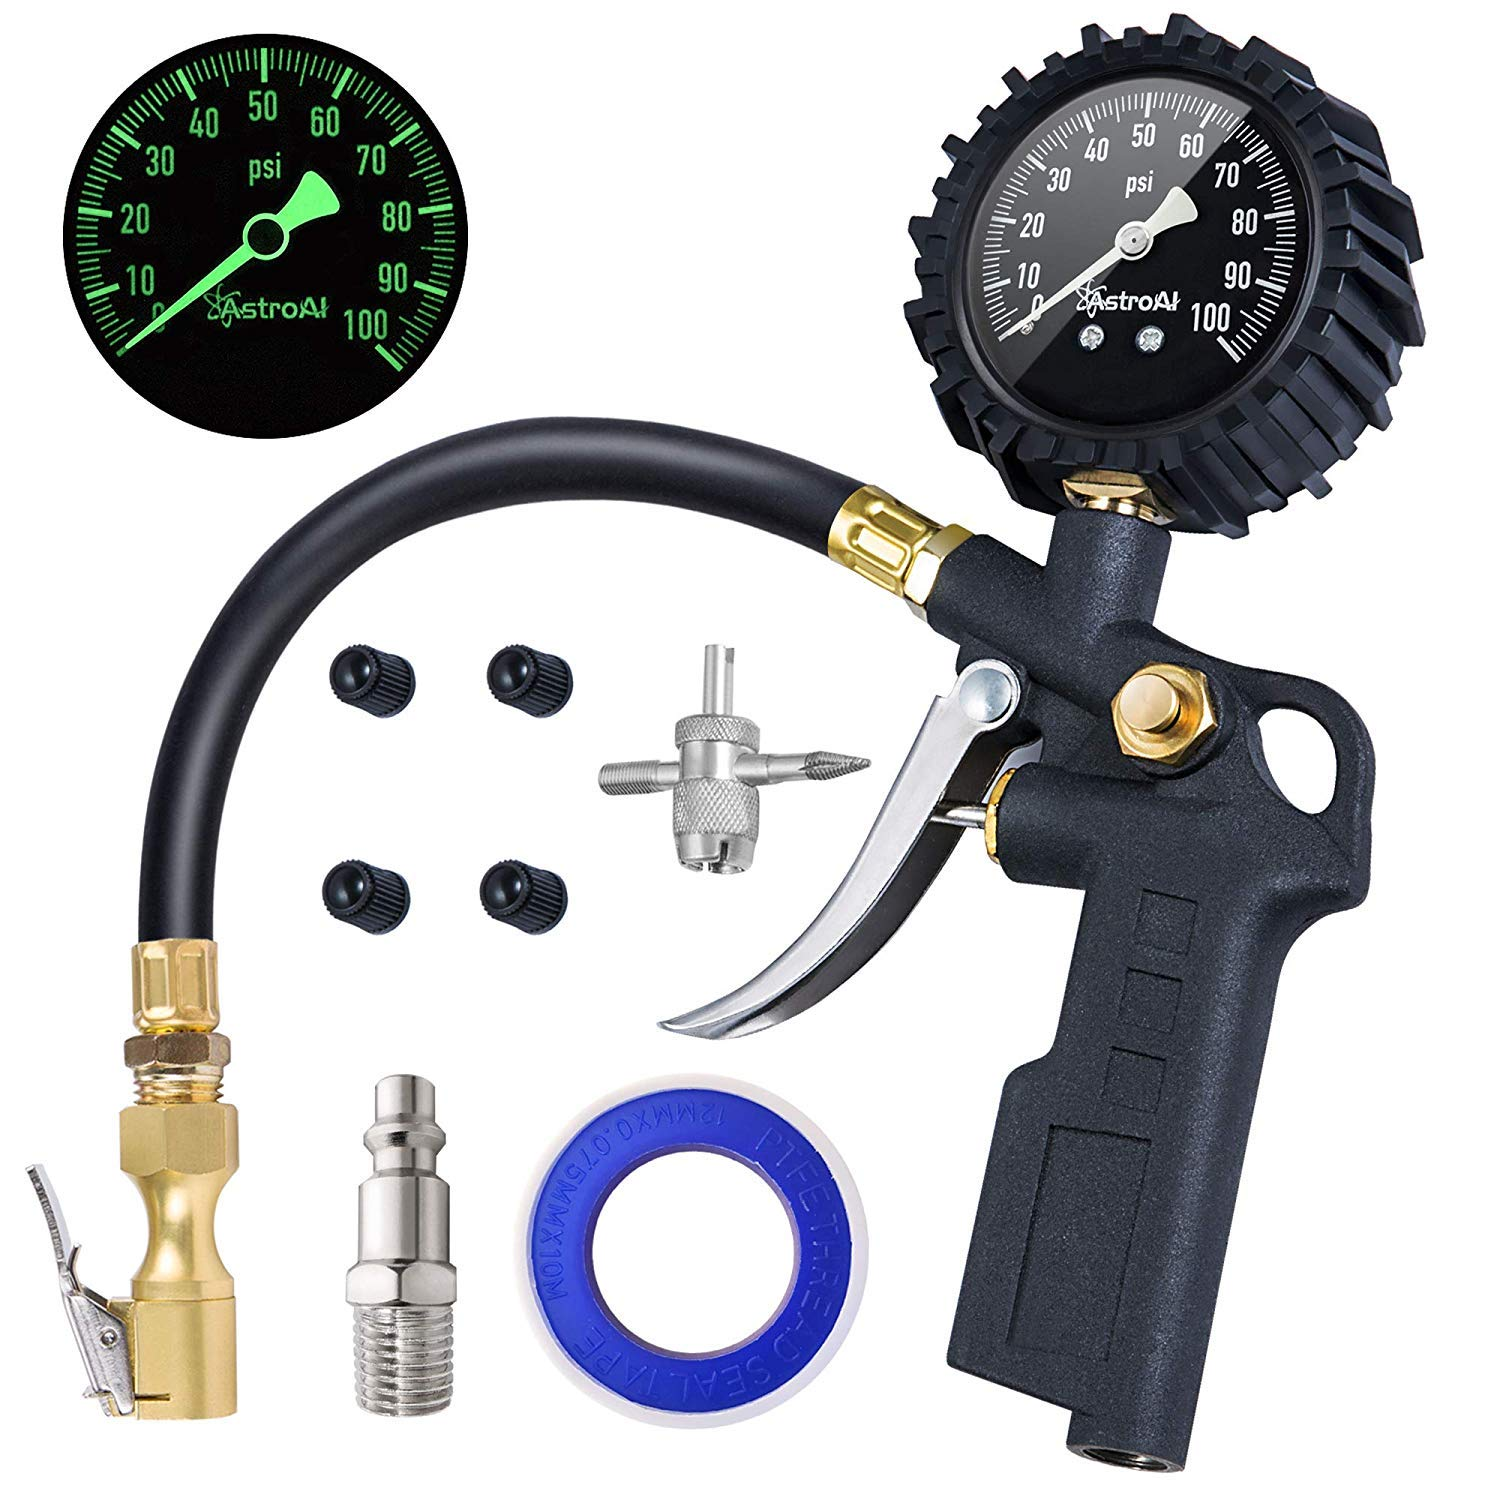 AstroAI Tire Inflator with Pressure Gauge, 100 PSI Air Chuck and Compressor Accessories Heavy Duty with Large 2.5'' Easy Read Glow Dial, Durable Rubber Hose and Quick Connect Coupler